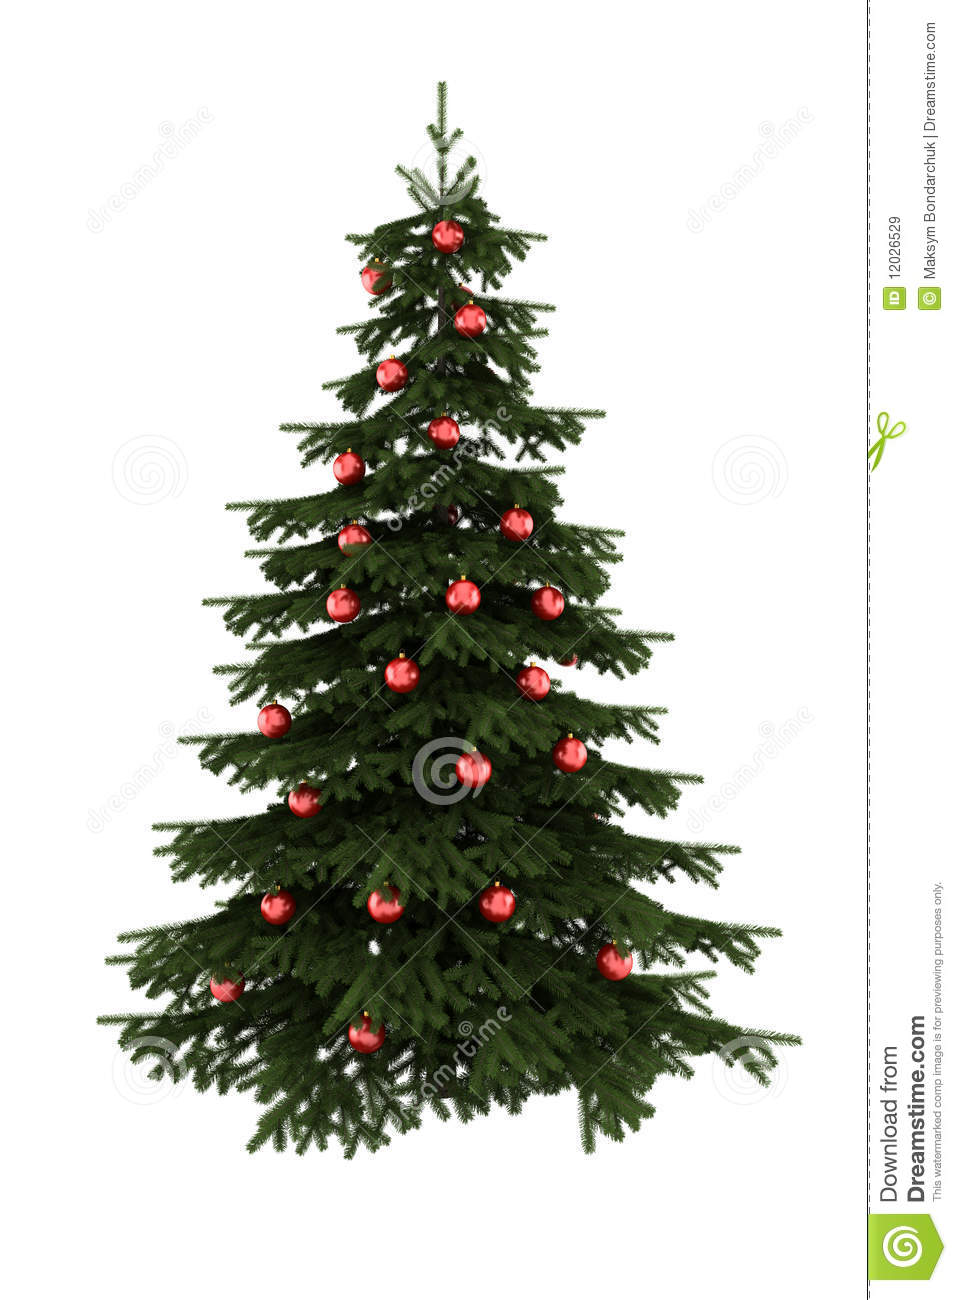 Christmas tree with red balls isolated on white royalty